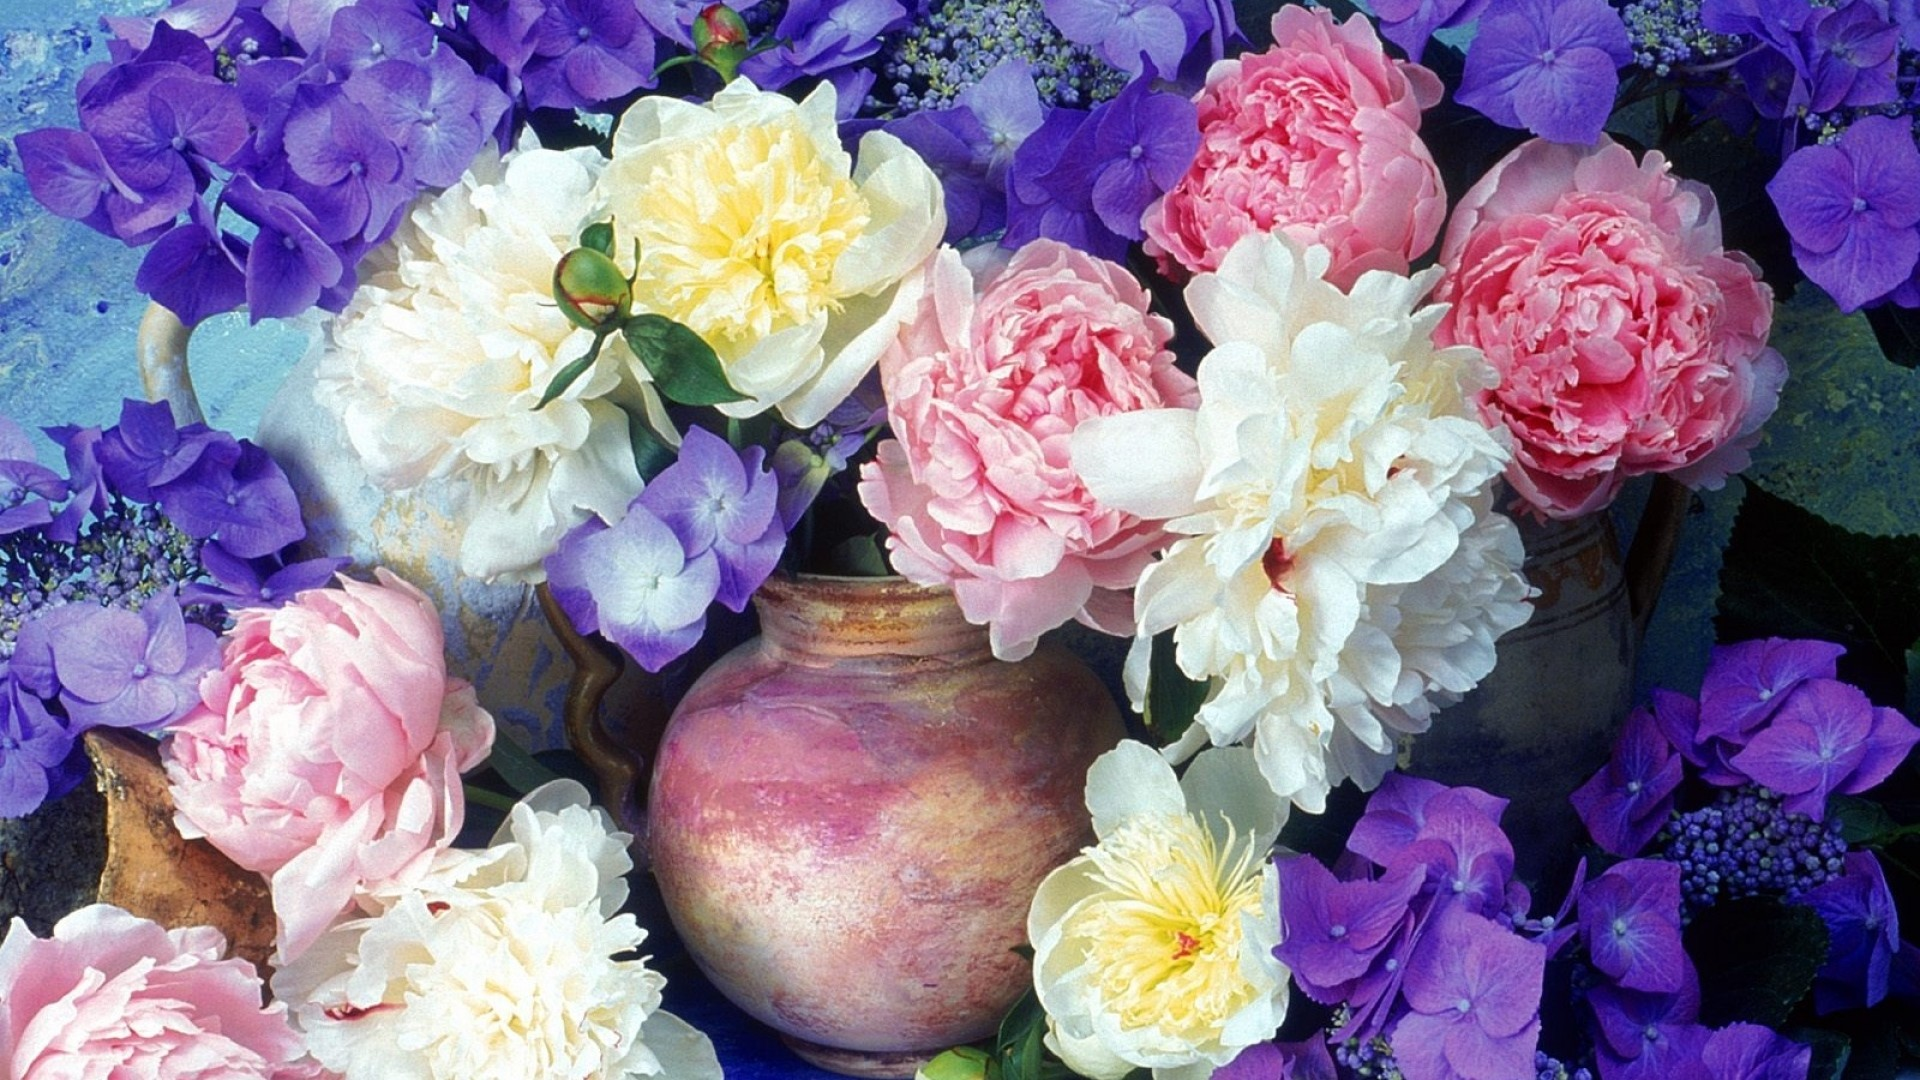 1920x1080 Download Wallpaper  Peonies, Hydrangea, Flowers .